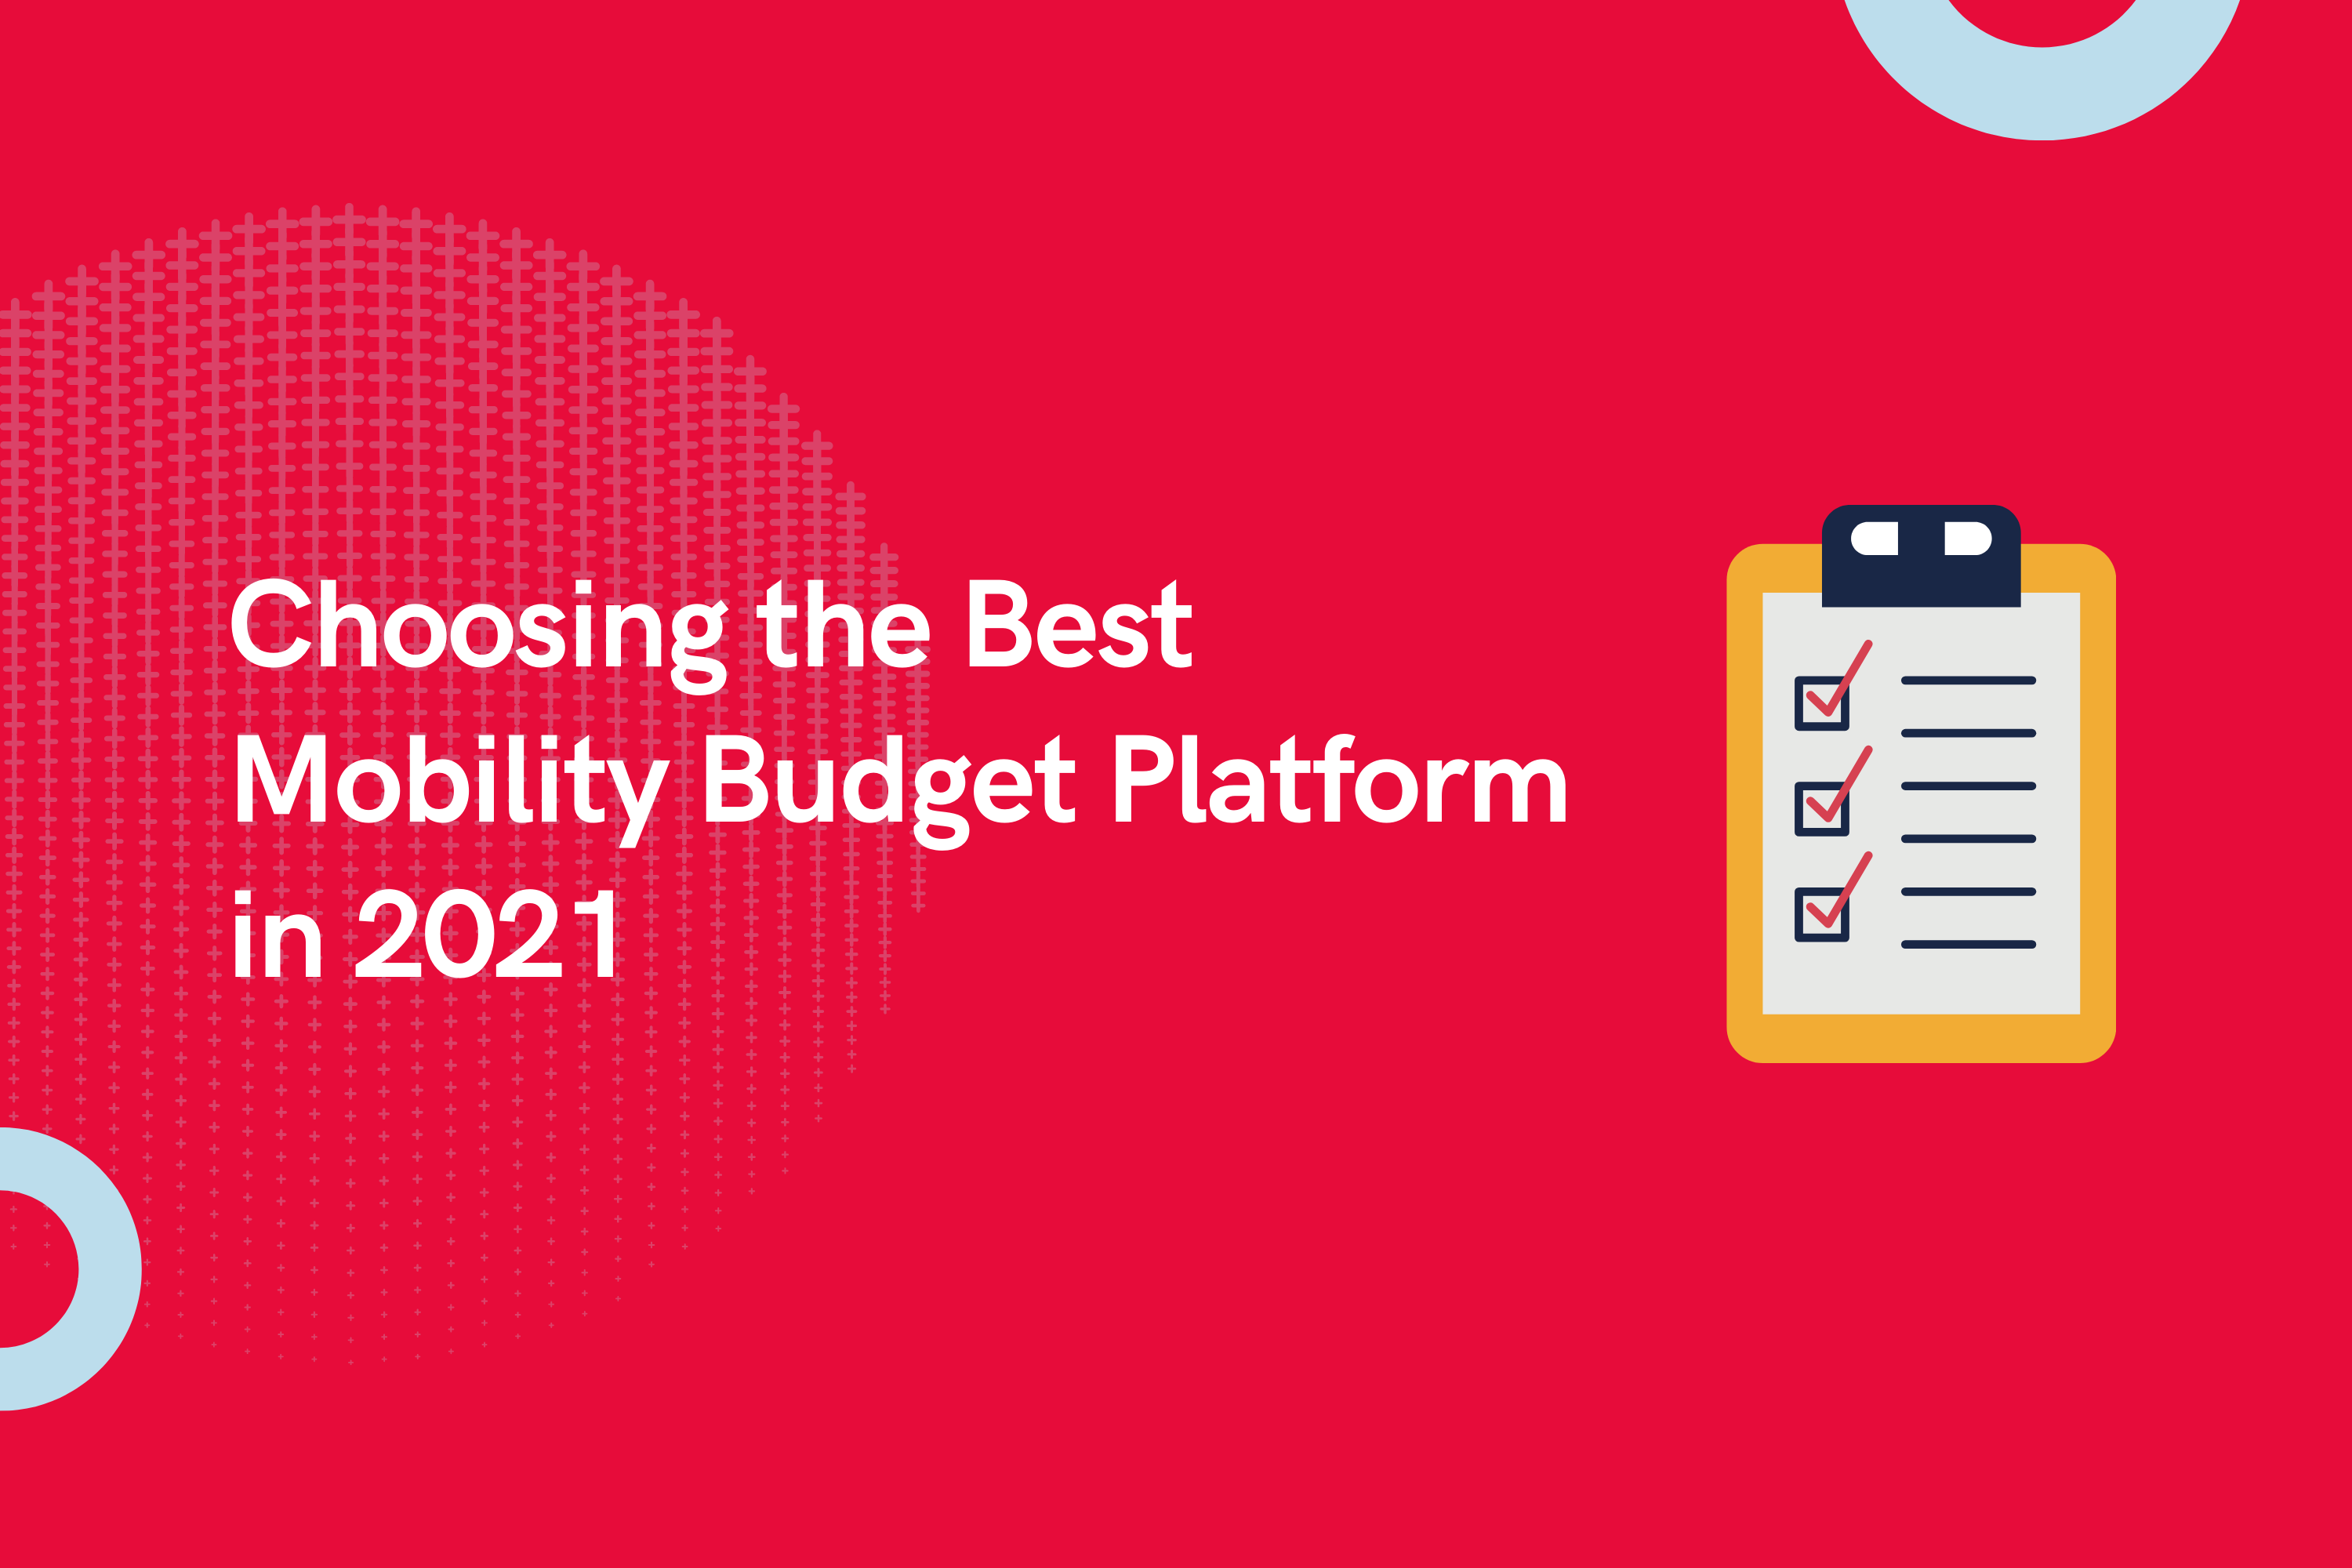 The HR Checklist to Choosing the Best Mobility Budget Platform